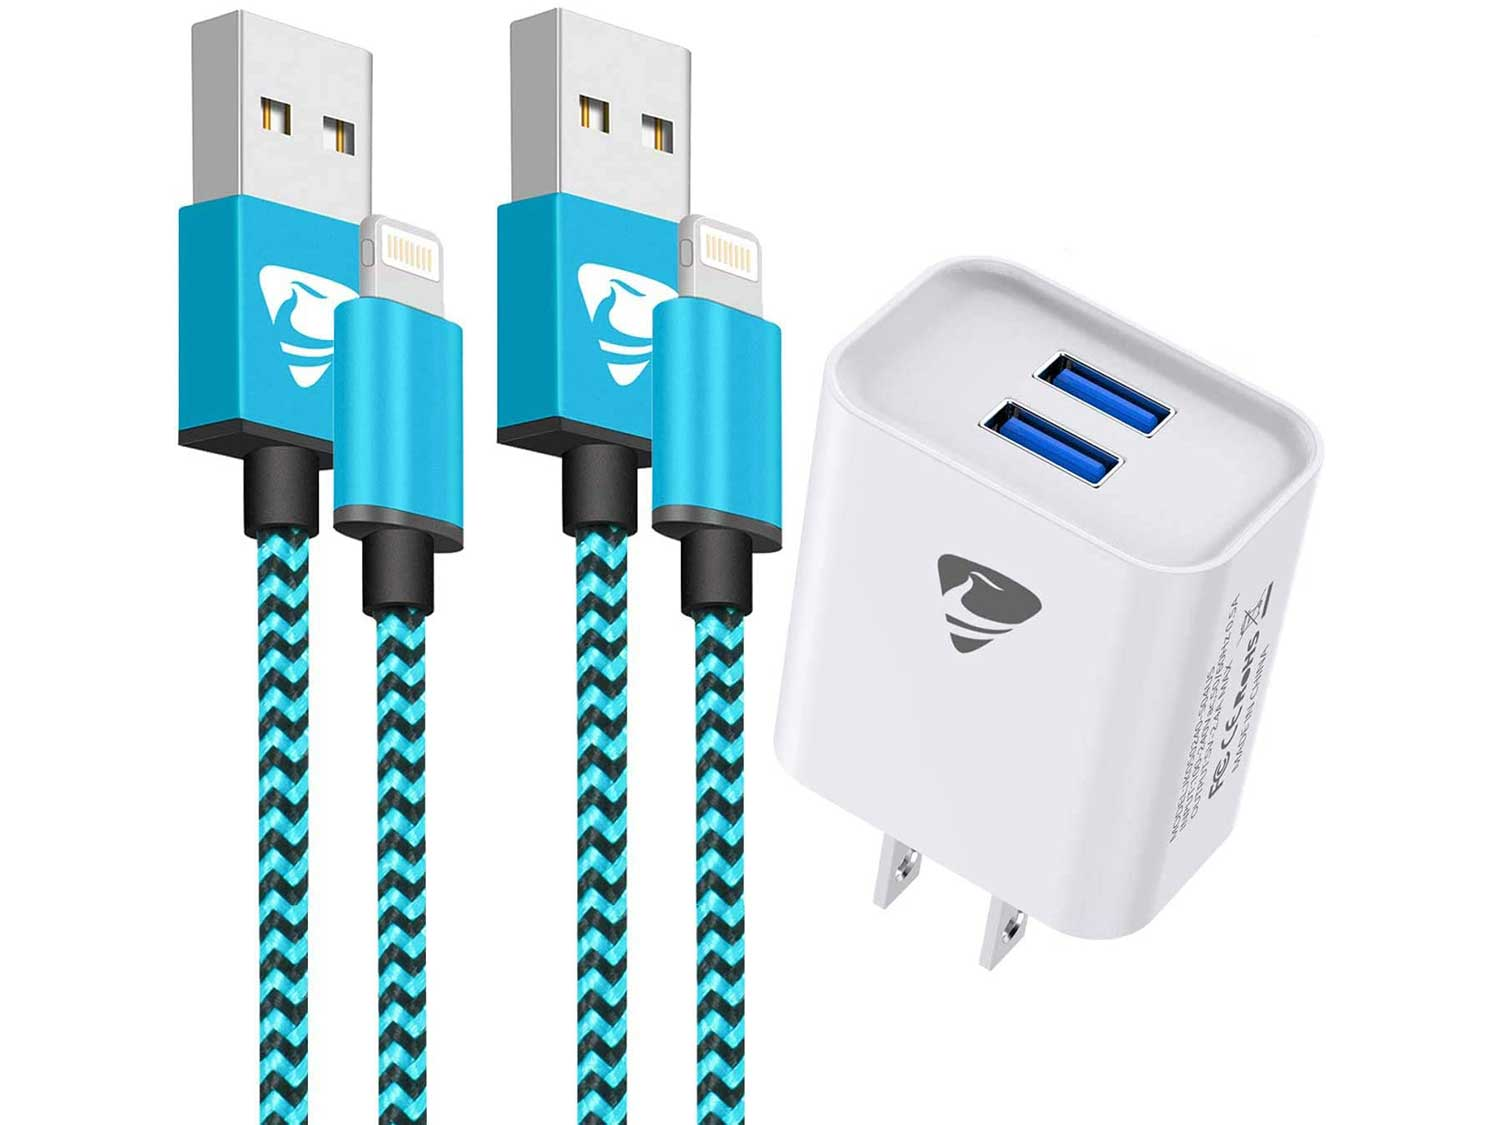 iPhone Charger,Lightning Cable Nylon Braided 2Pack 6FT iPhone Charging Cord with Dual Port USB Wall Charger,Travel Adapter Compatible with iPhone 11 Pro Max XS XR X 8 7 Plus 6s 6 iPad